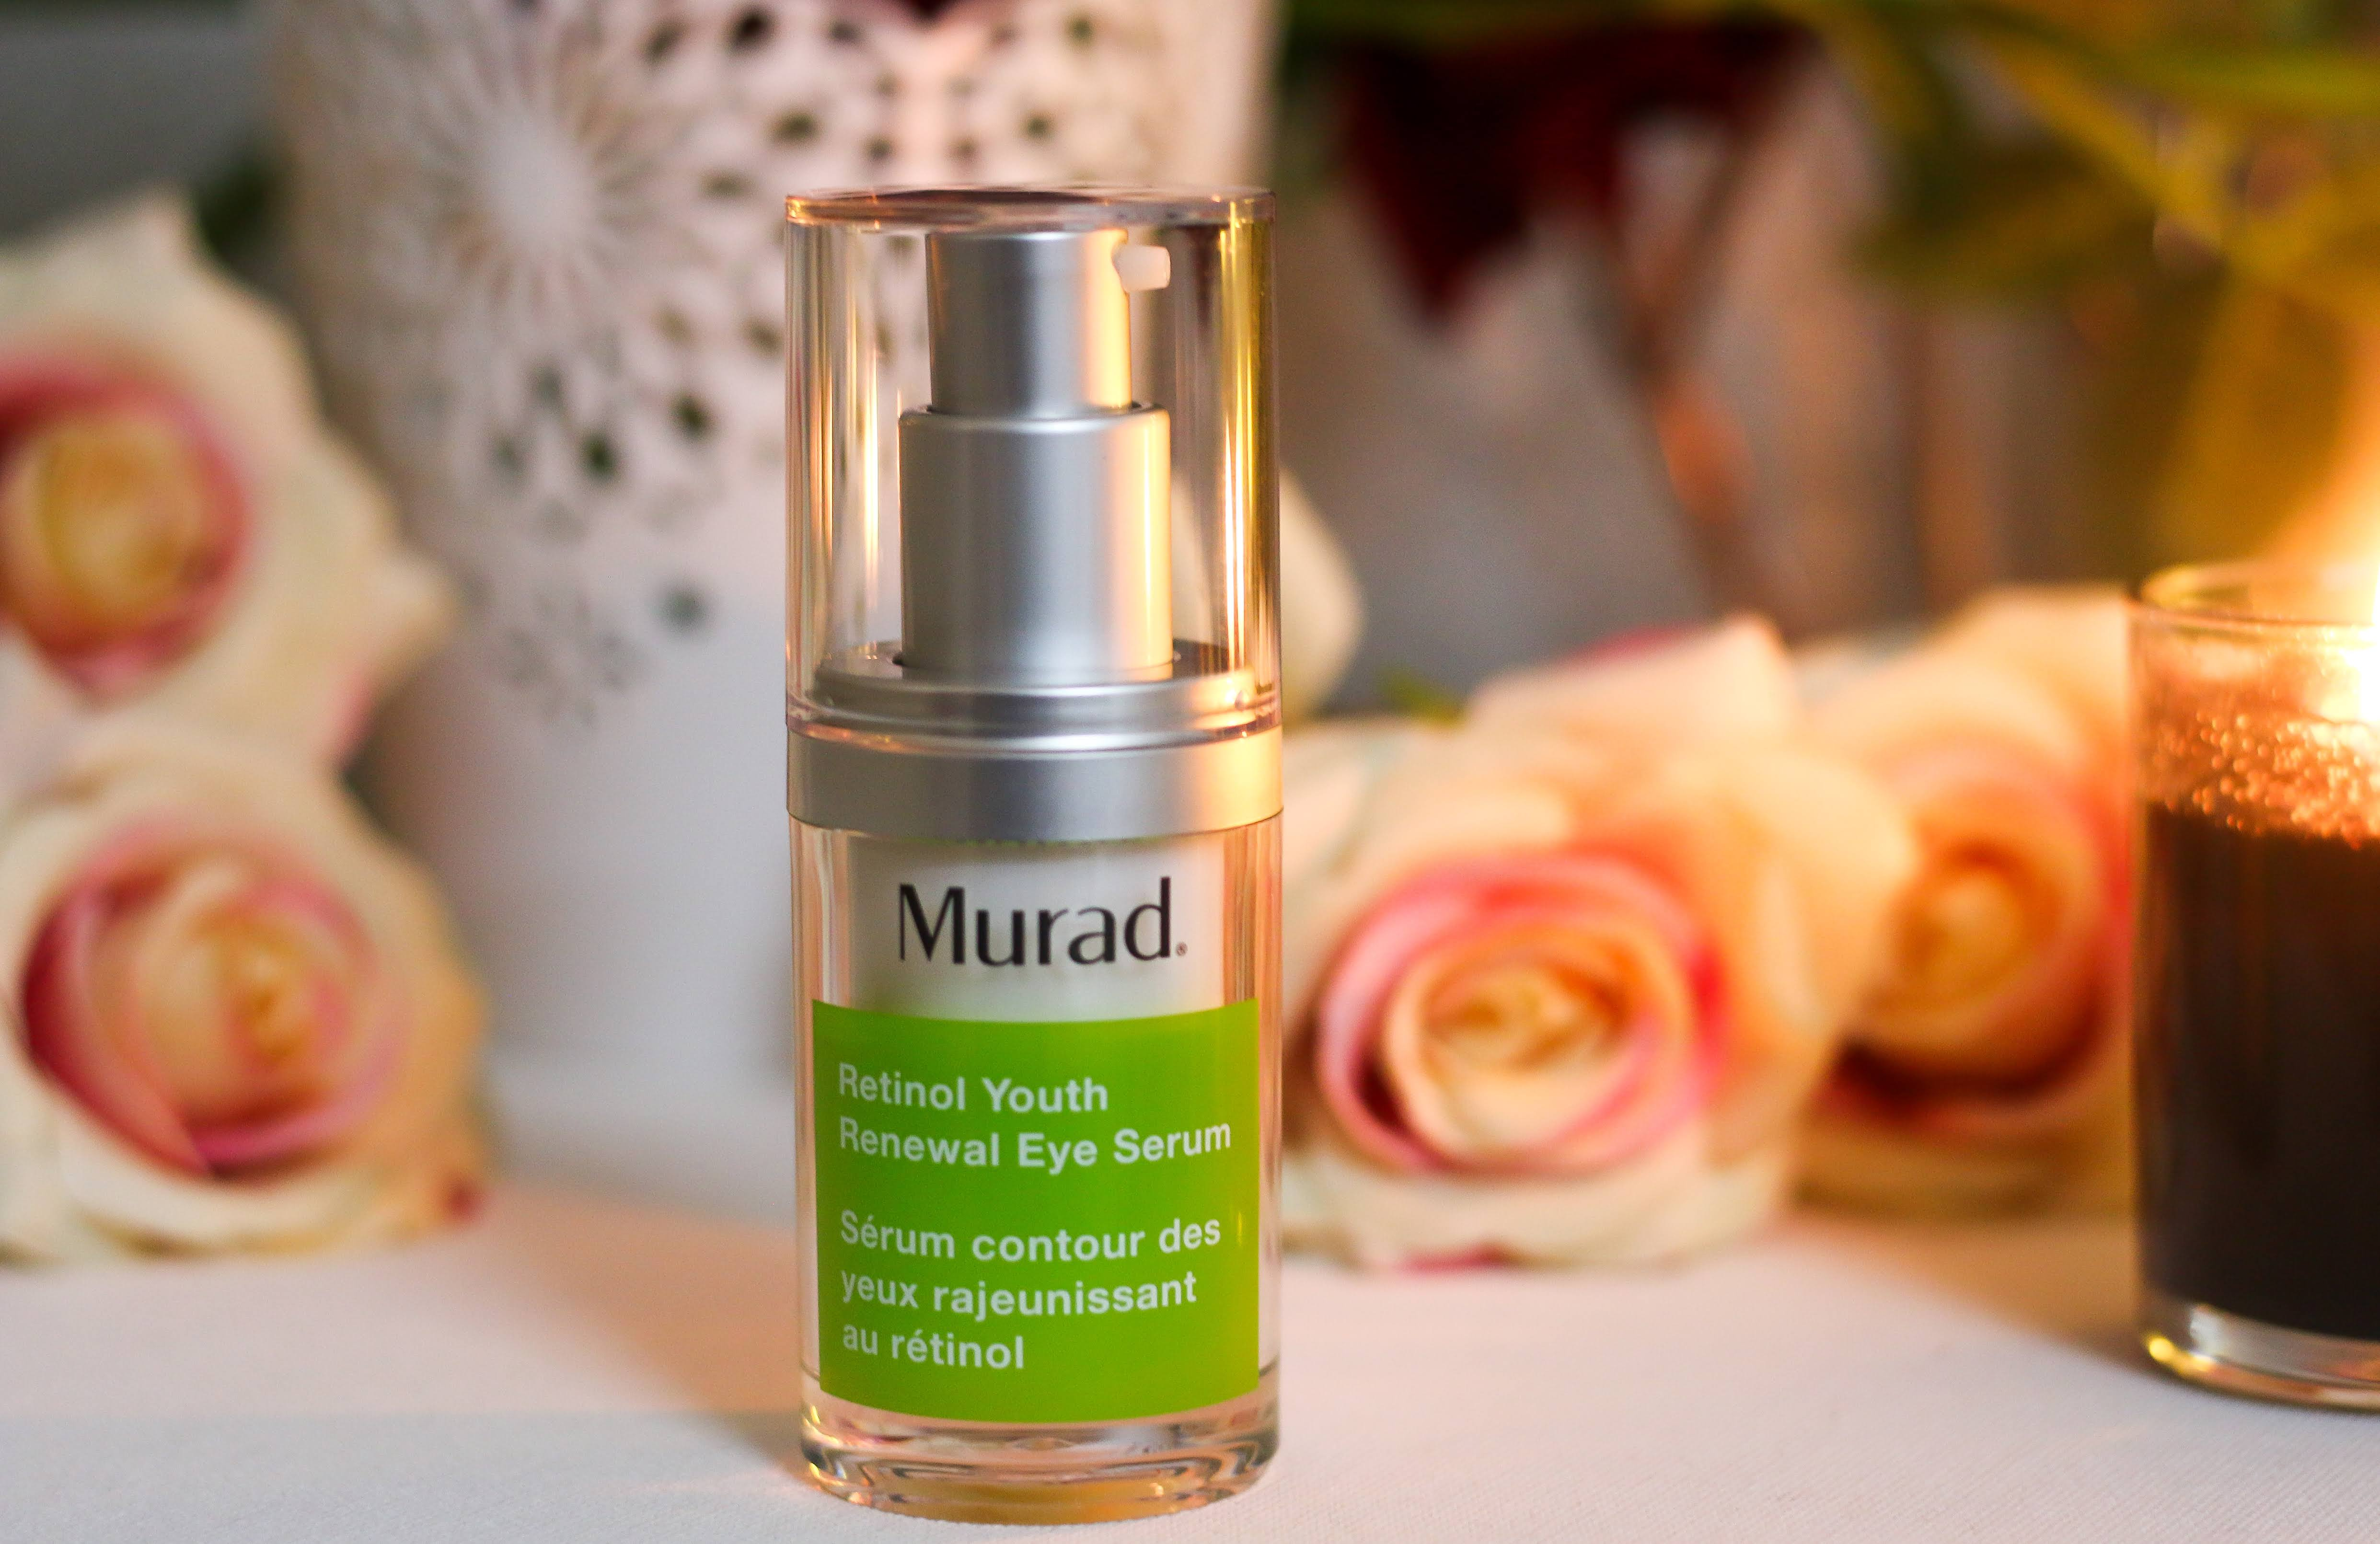 murad retinol youth renewal eye serum review, murad retinol youth renewal eye serum review, murad retinol eye serum,  murad retinol eye serum ingredients, murad retinol youth eye serum, murad retinol youth renewal eye serum sephora murad retinol youth renewal skincare, murad retinoleye serum review, murad retinol youth renewal eye serum ingredients